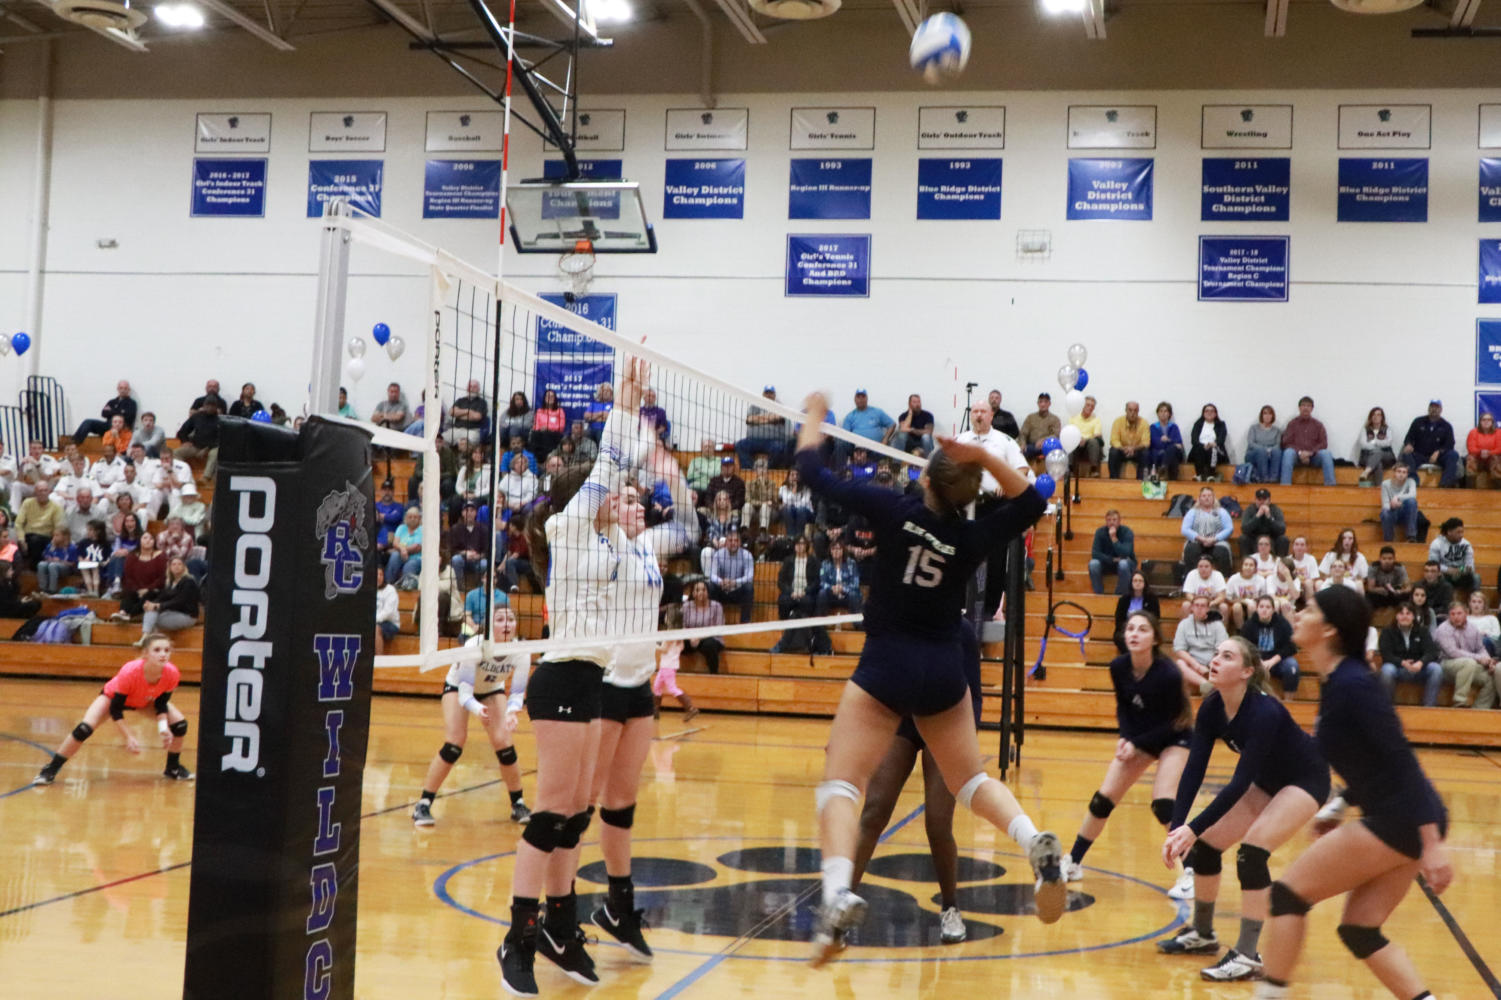 Junior+outside+hitter+Jakaya+Brandon+jumps+to+hit+the+ball+during+the+Streaks%27+first+set+loss+to+the+Wildcats.+